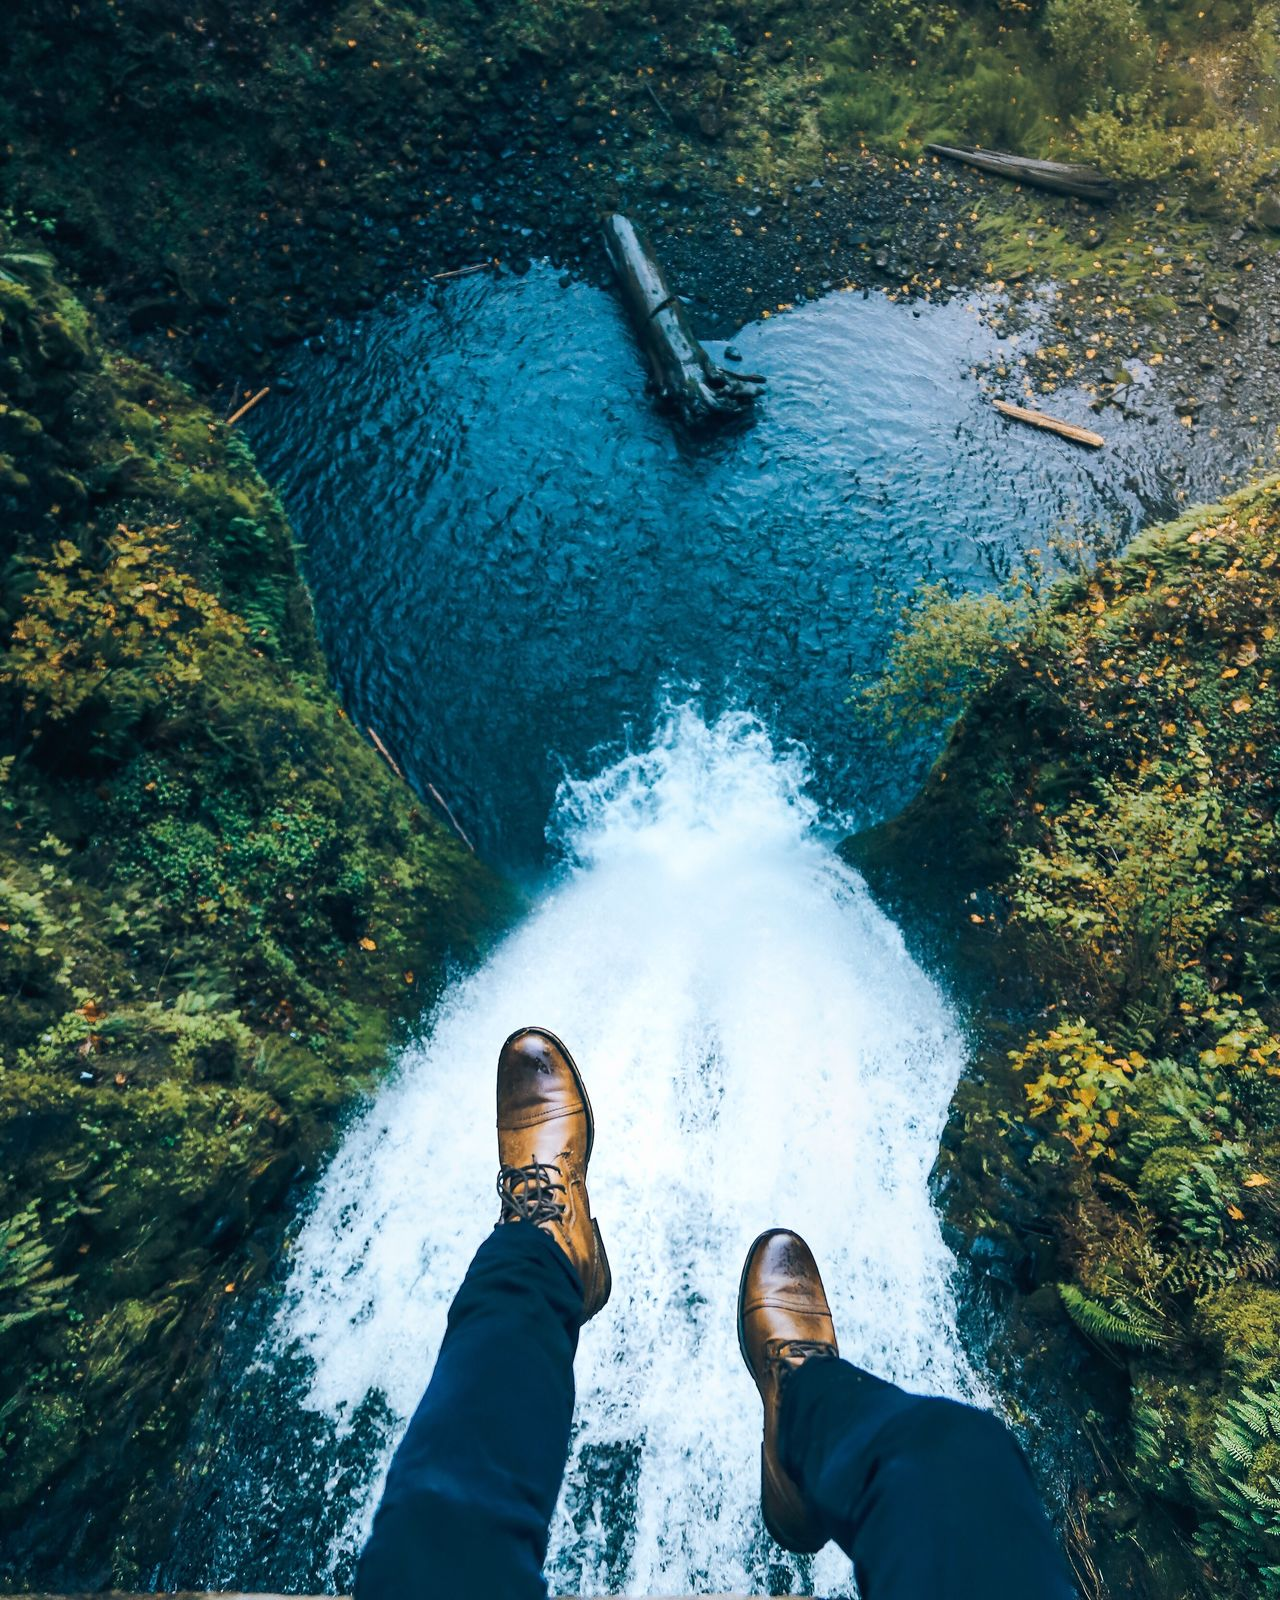 Live For The Story High Angle View Water One Person Real People Personal Perspective Human Leg Outdoors Low Section Day Men Nature Shoe Standing Leisure Activity Motion Lifestyles Human Body Part Beauty In Nature People